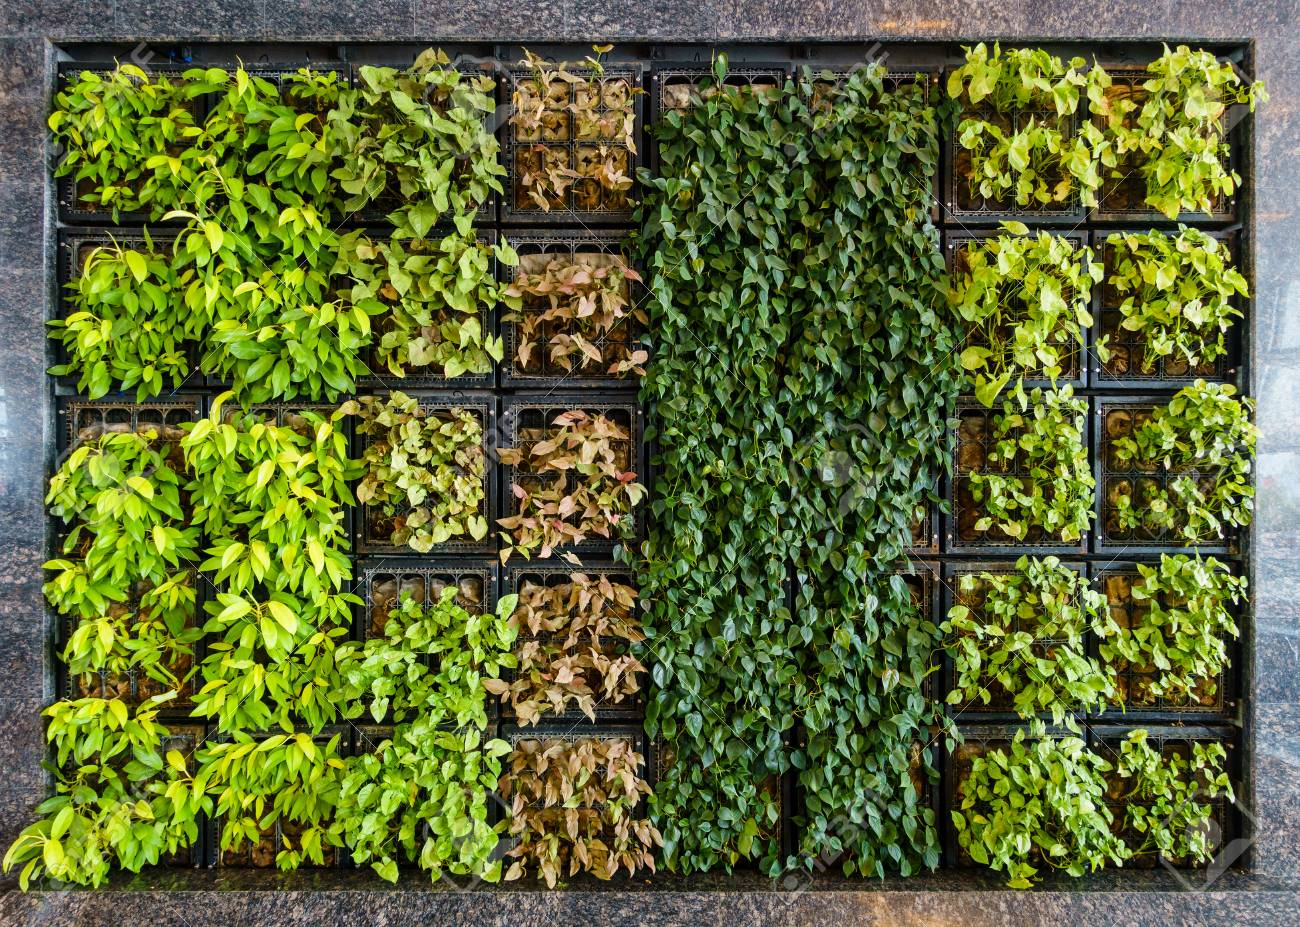 Vertical Living Wall Indoor green wall also known as living wall or vertical garden Stock Photo  - 100559590